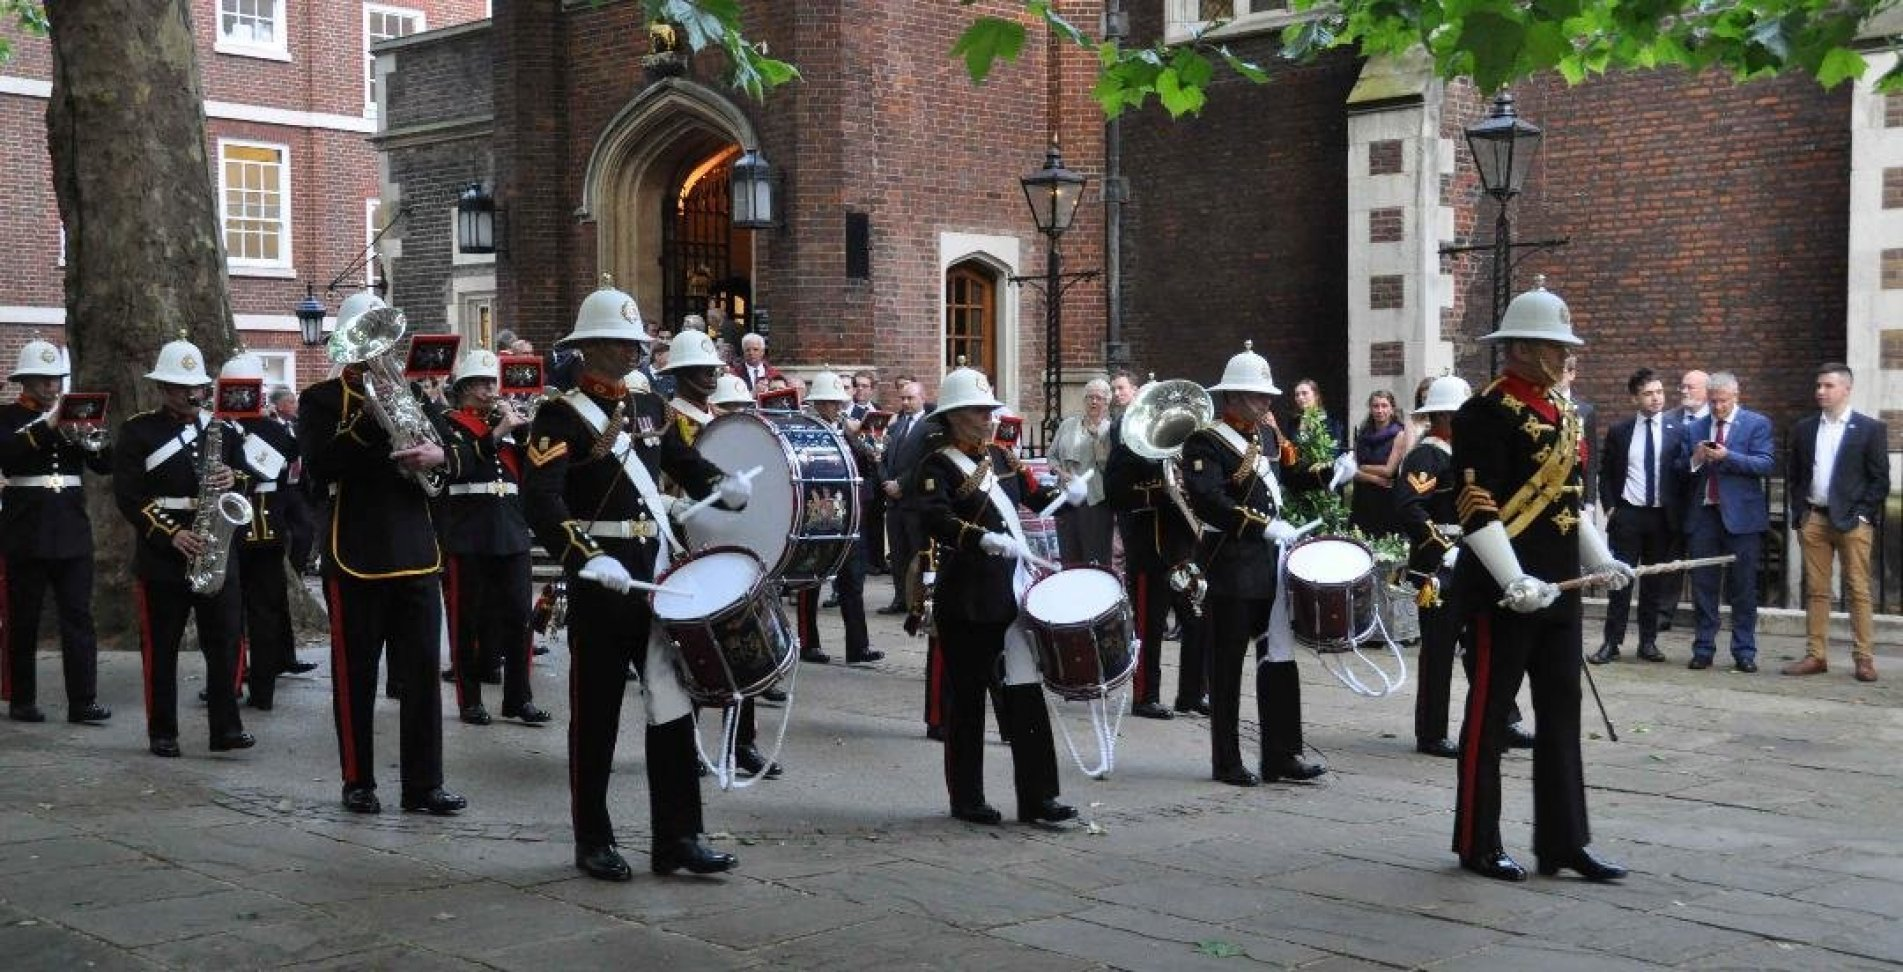 FIG-19 Royal Marine Band